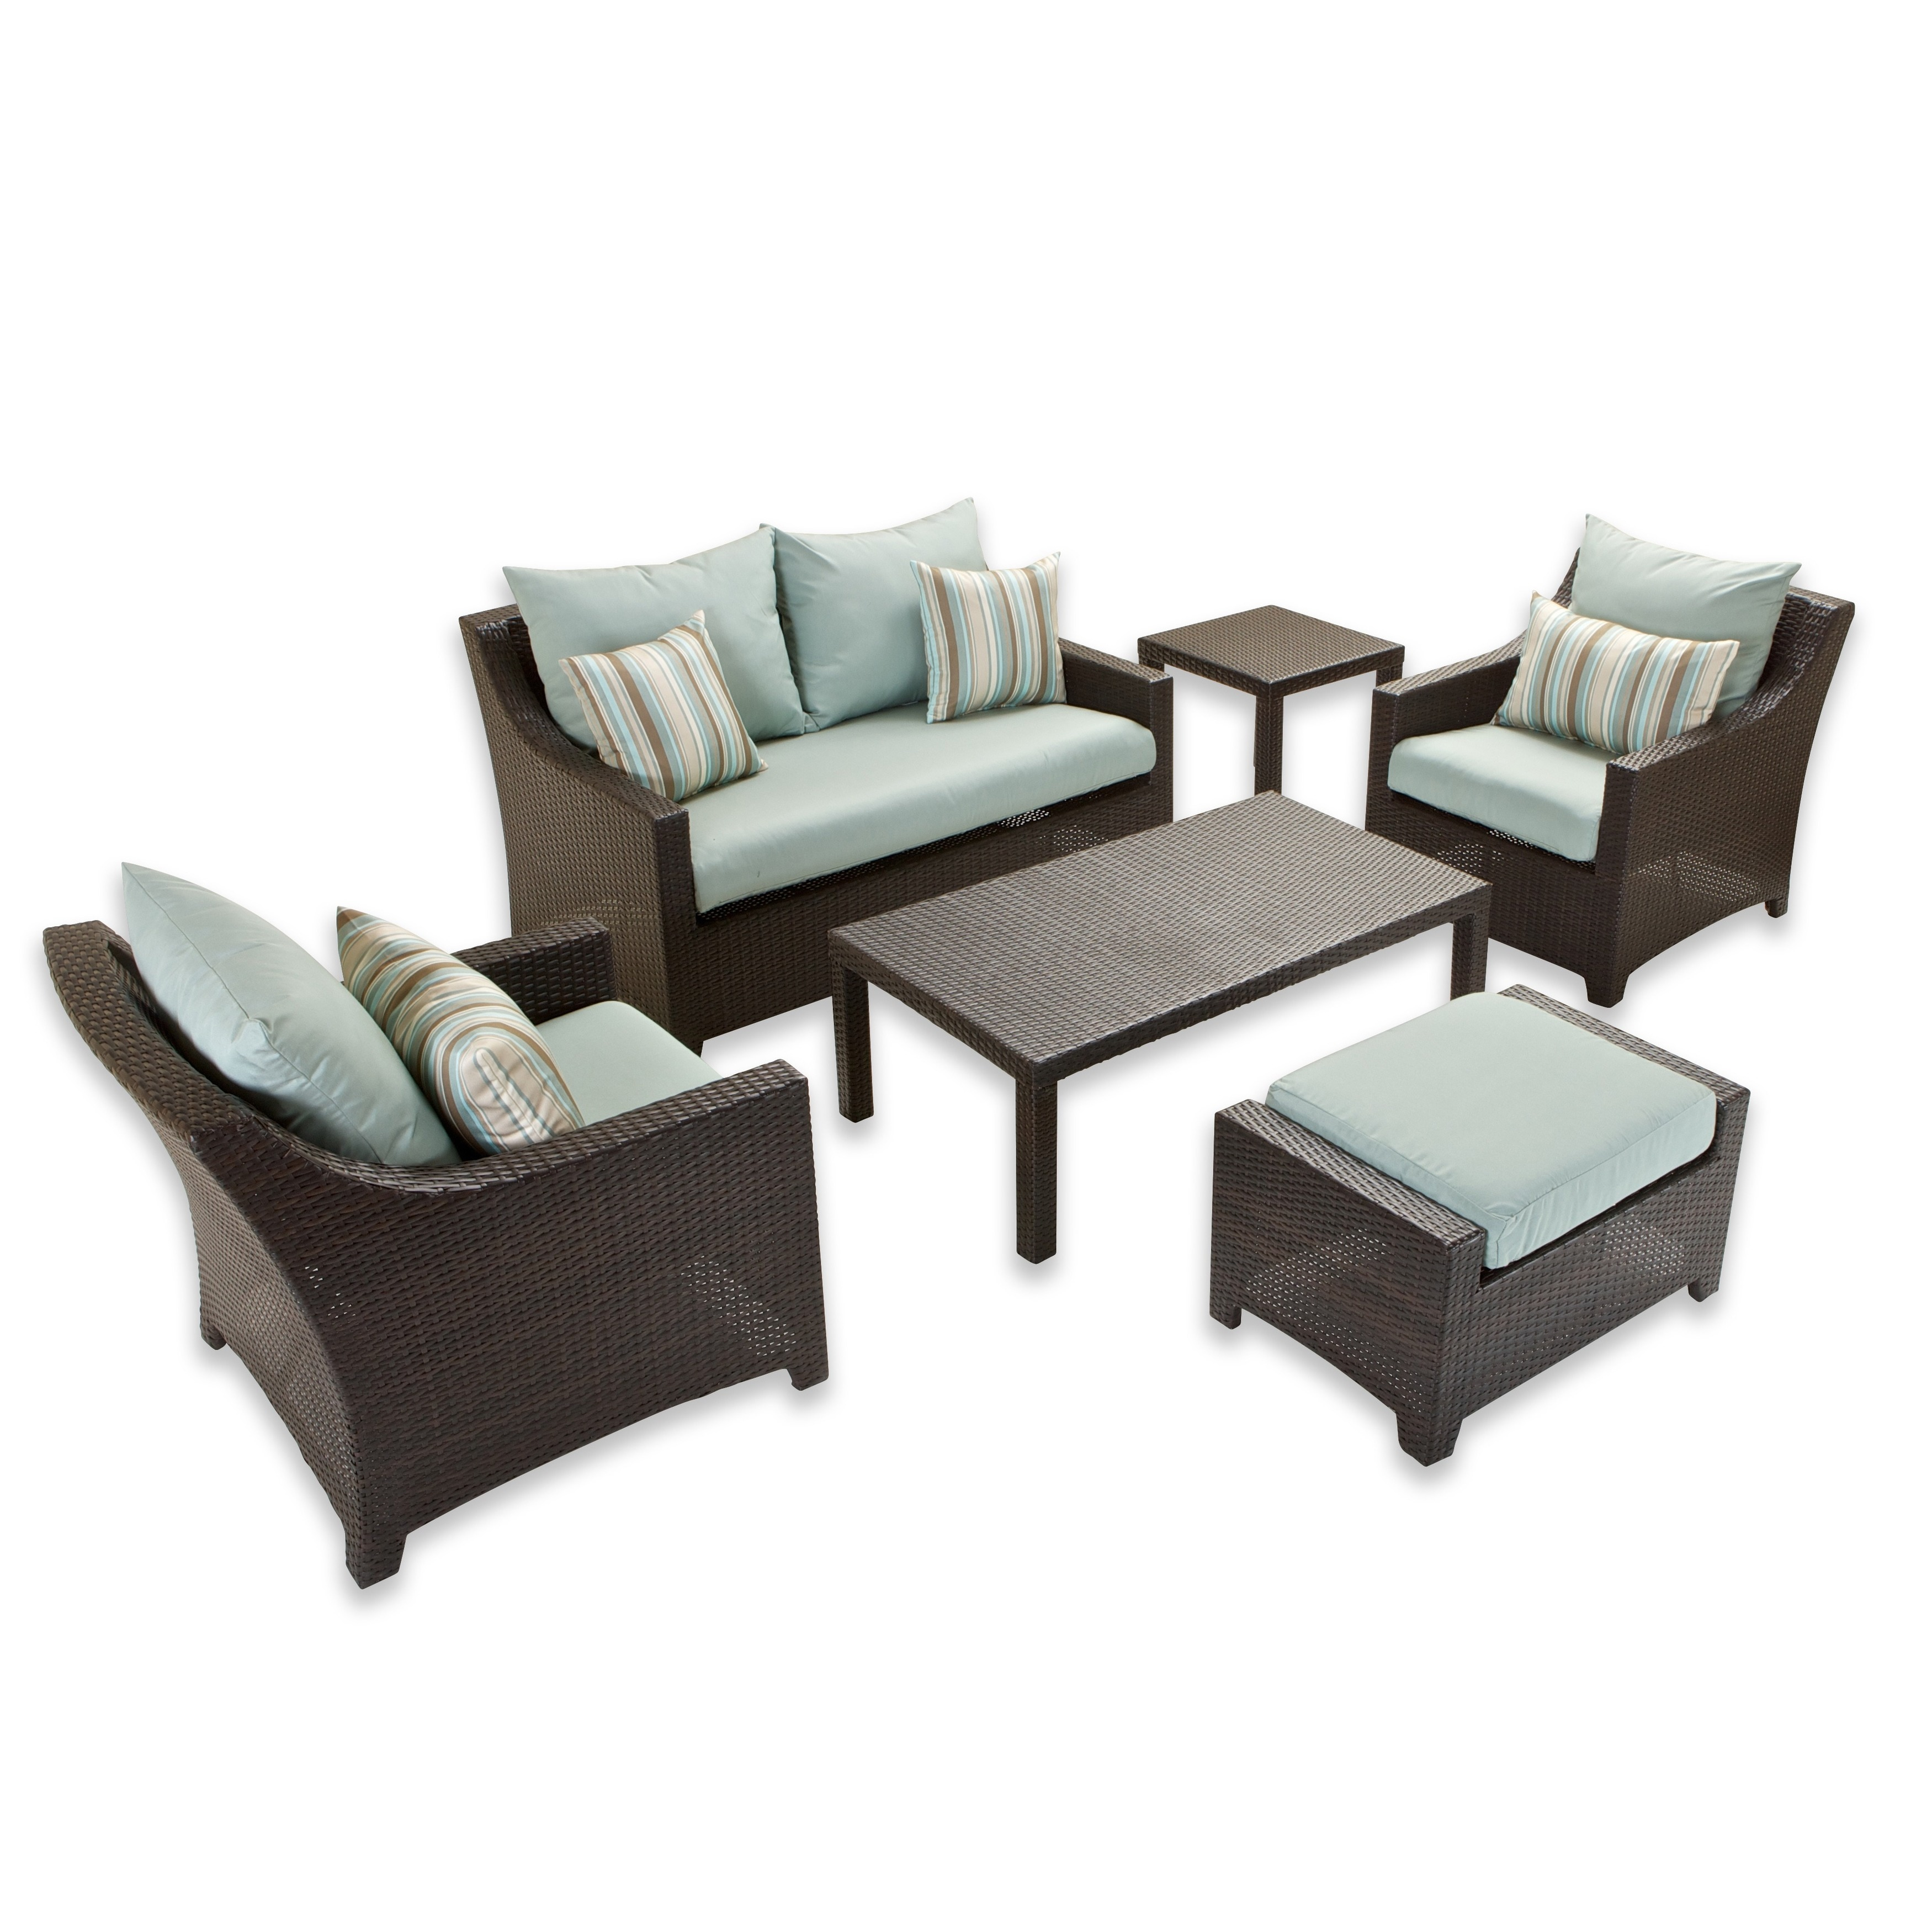 RST Brands Bliss 6 piece Loveseat Chairs and Ottomans Patio Set